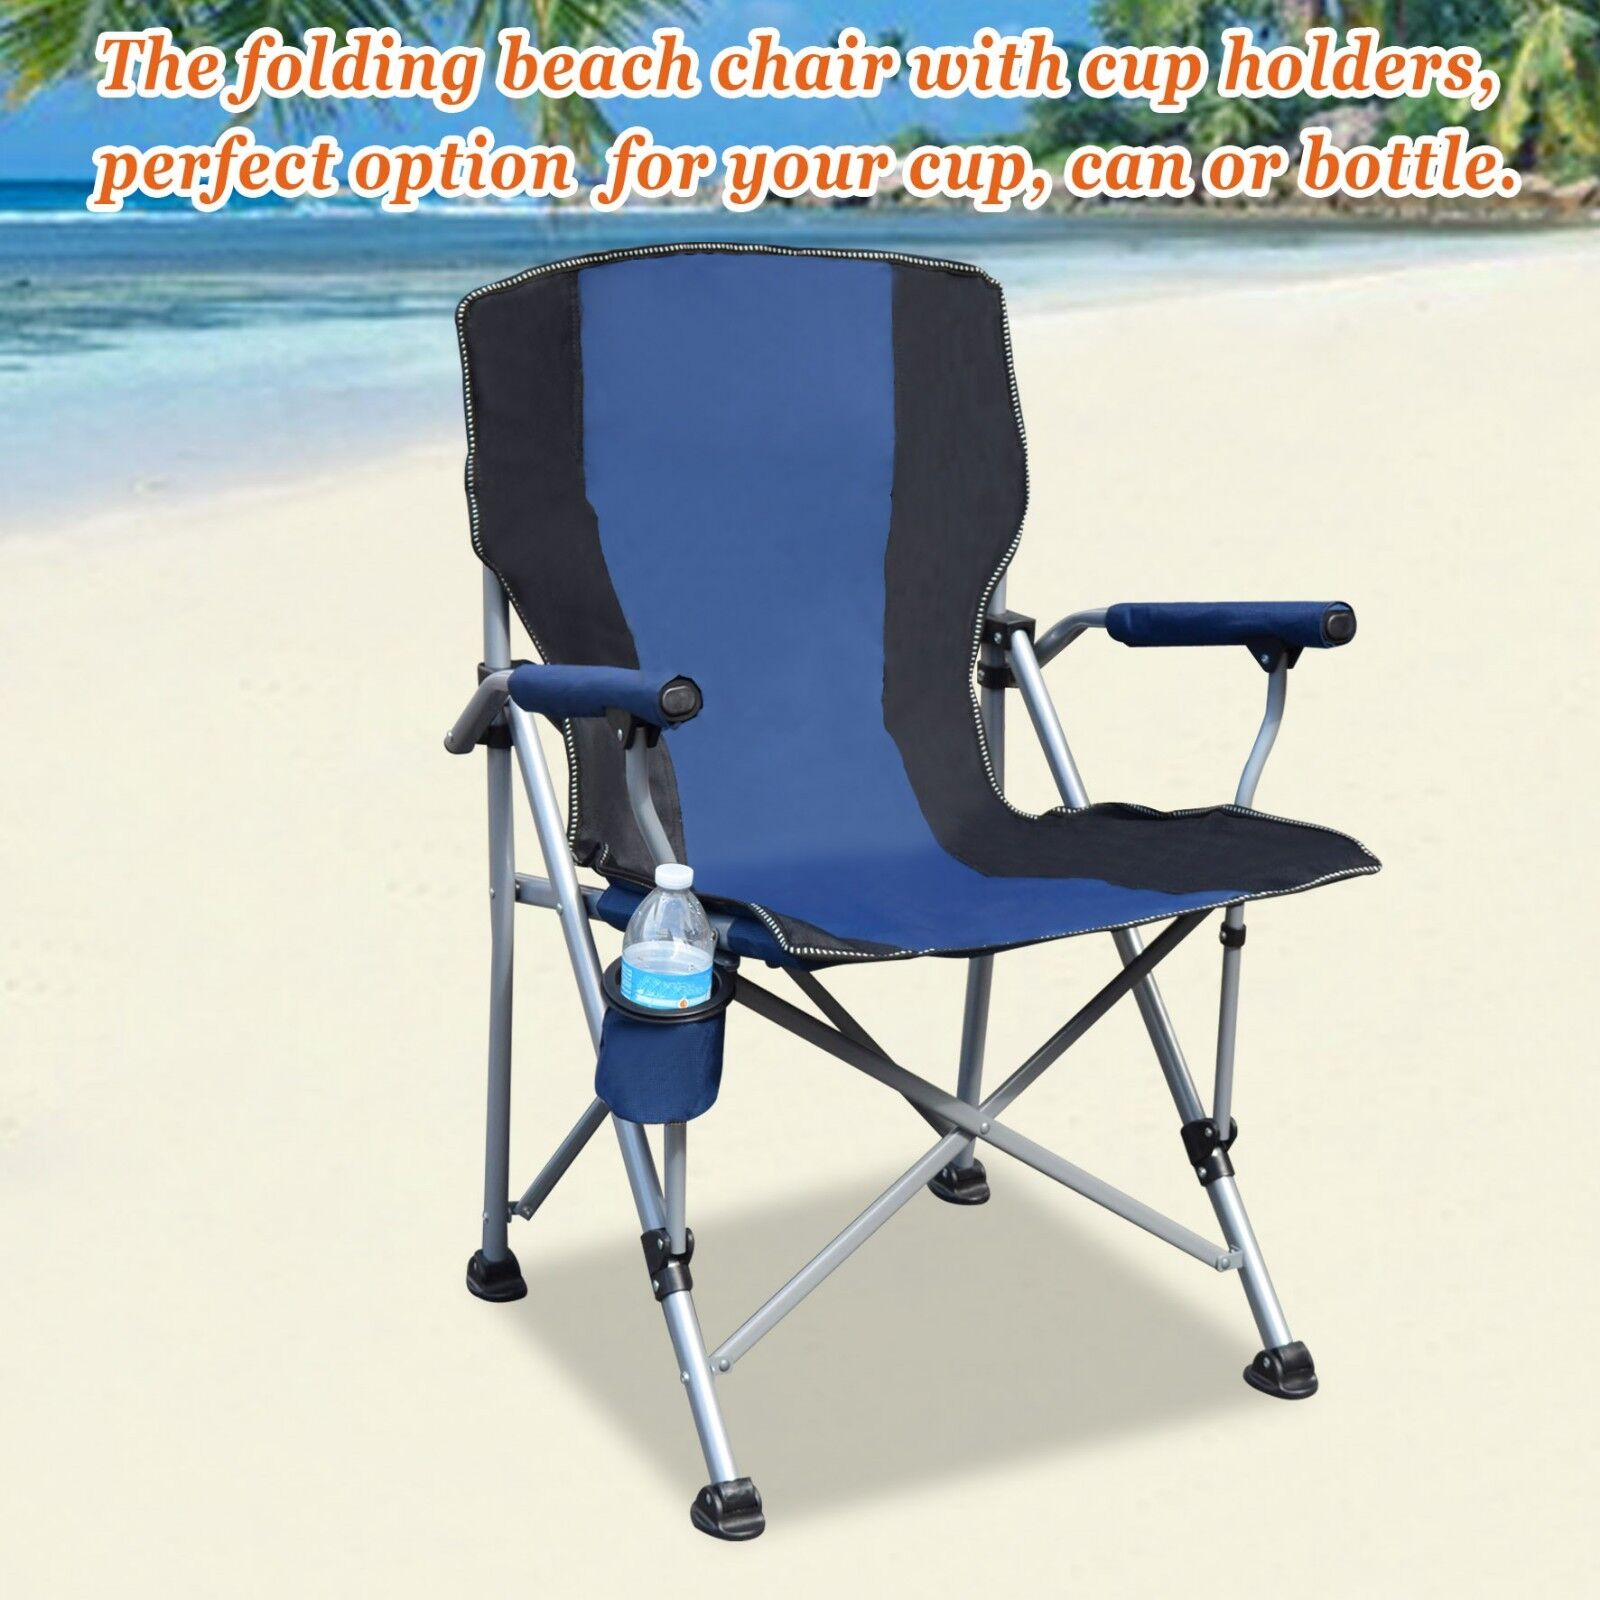 Folding Camping Chair With Cup Holder Picnic Beach Oversized Armchair Seat